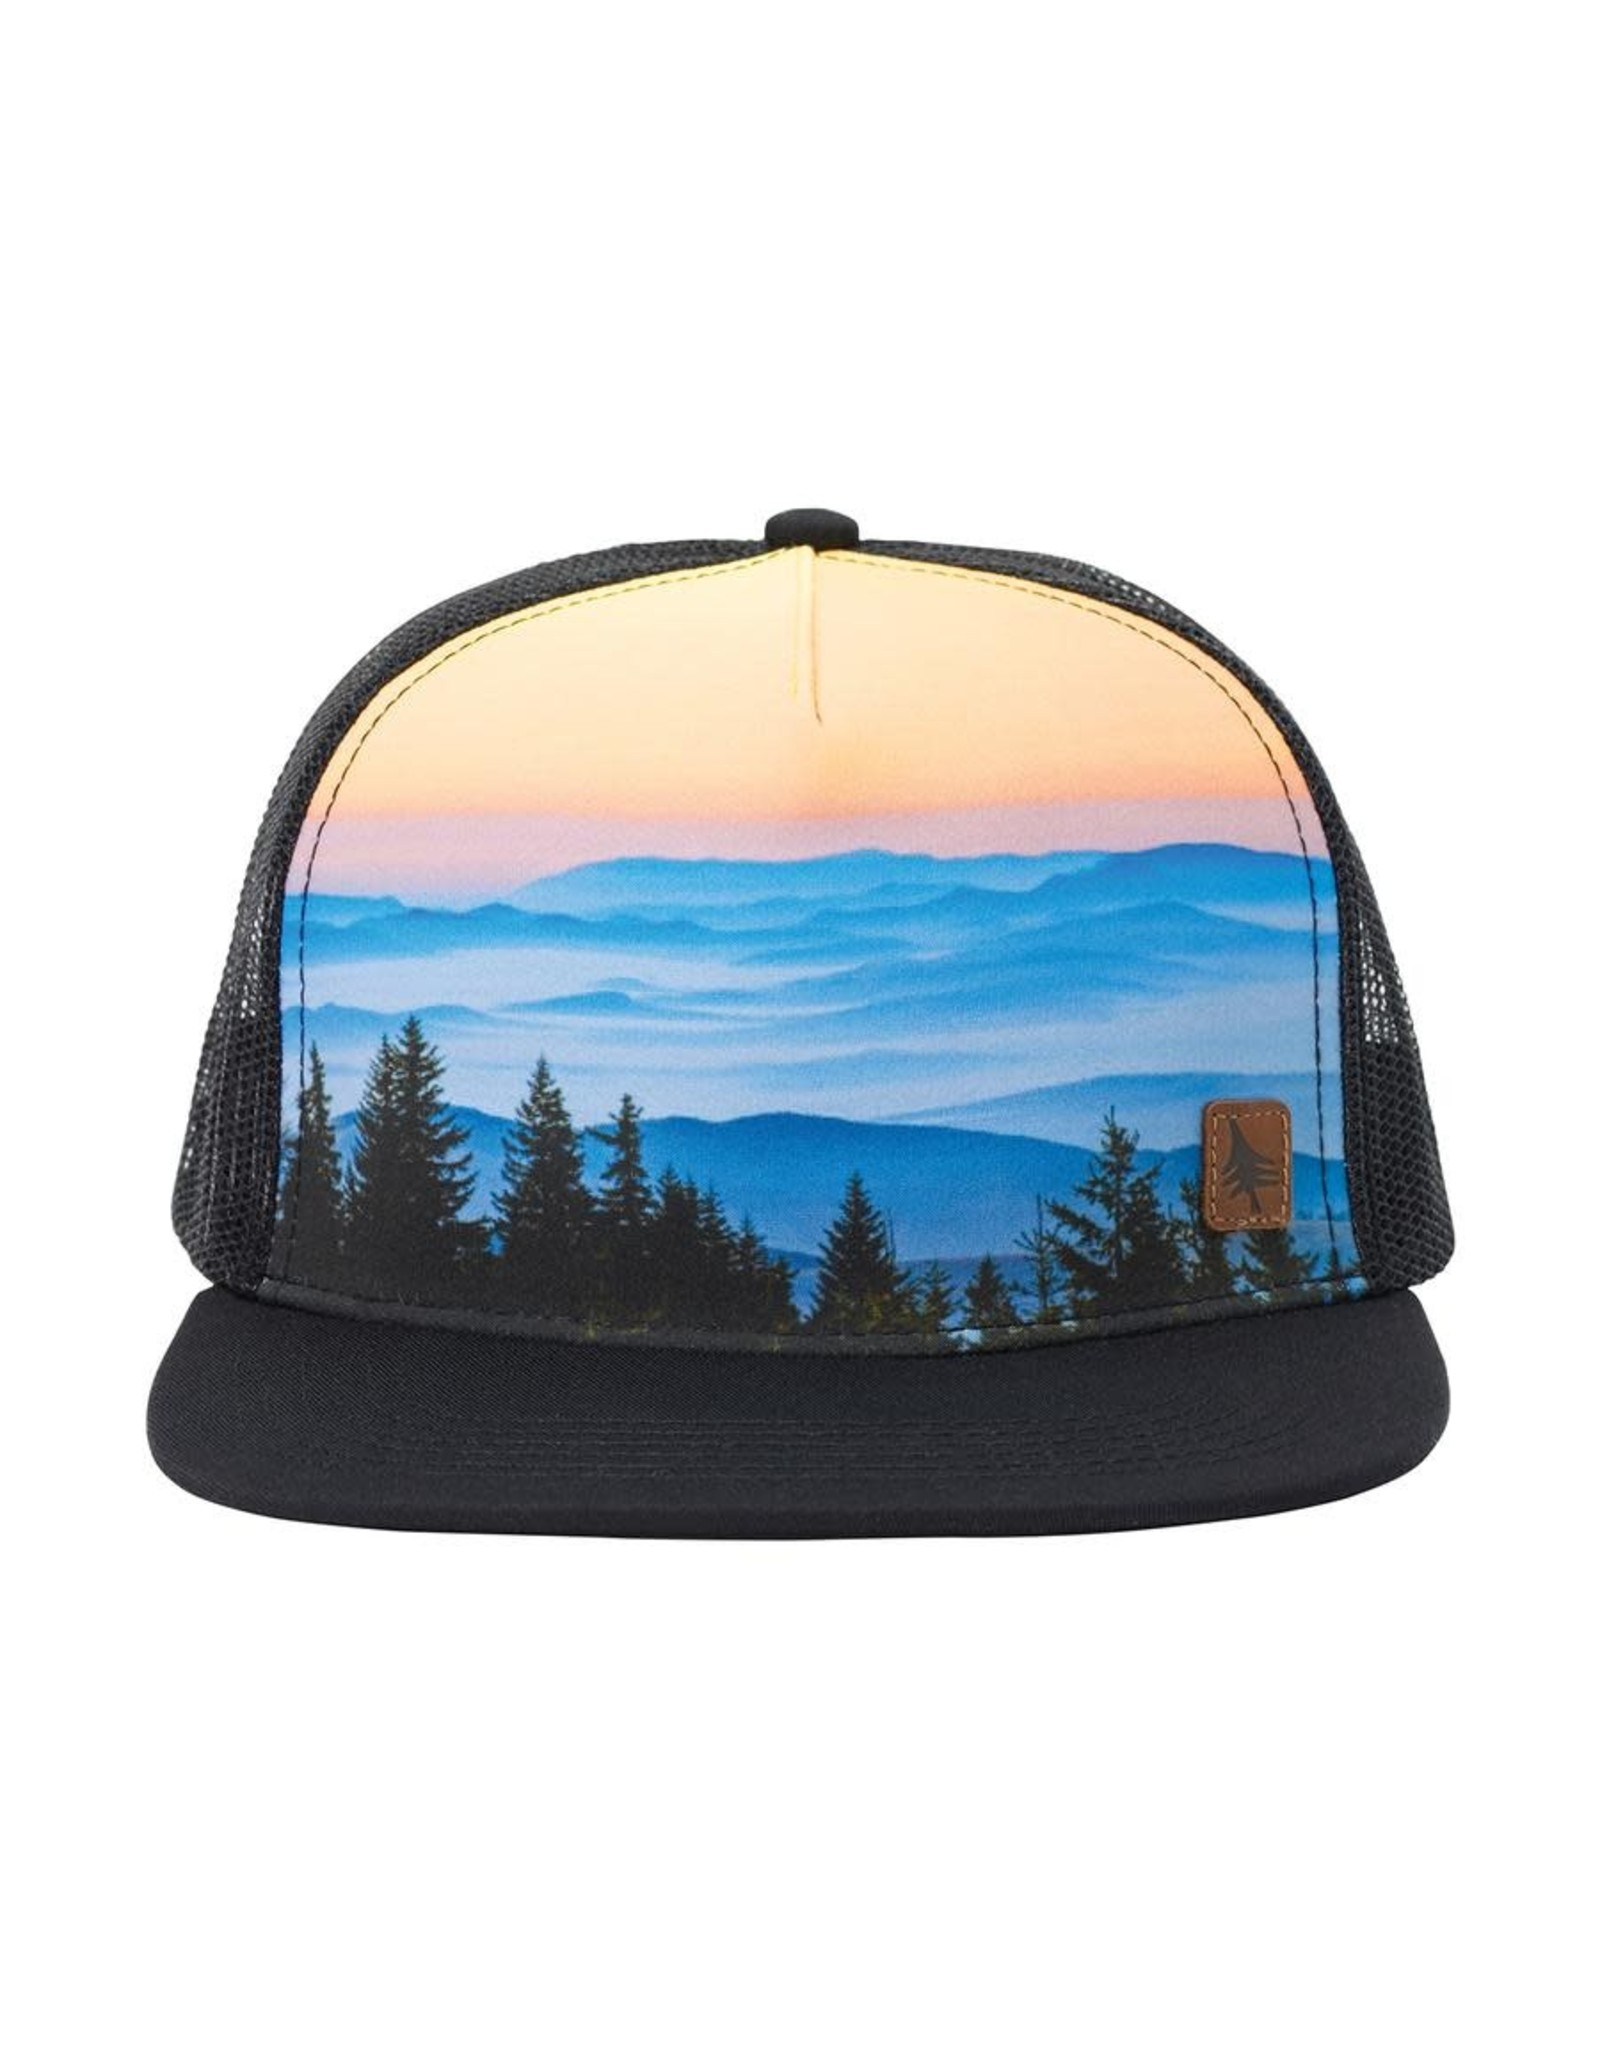 Hippy Tree HT Crestline Cap: Black- O/S